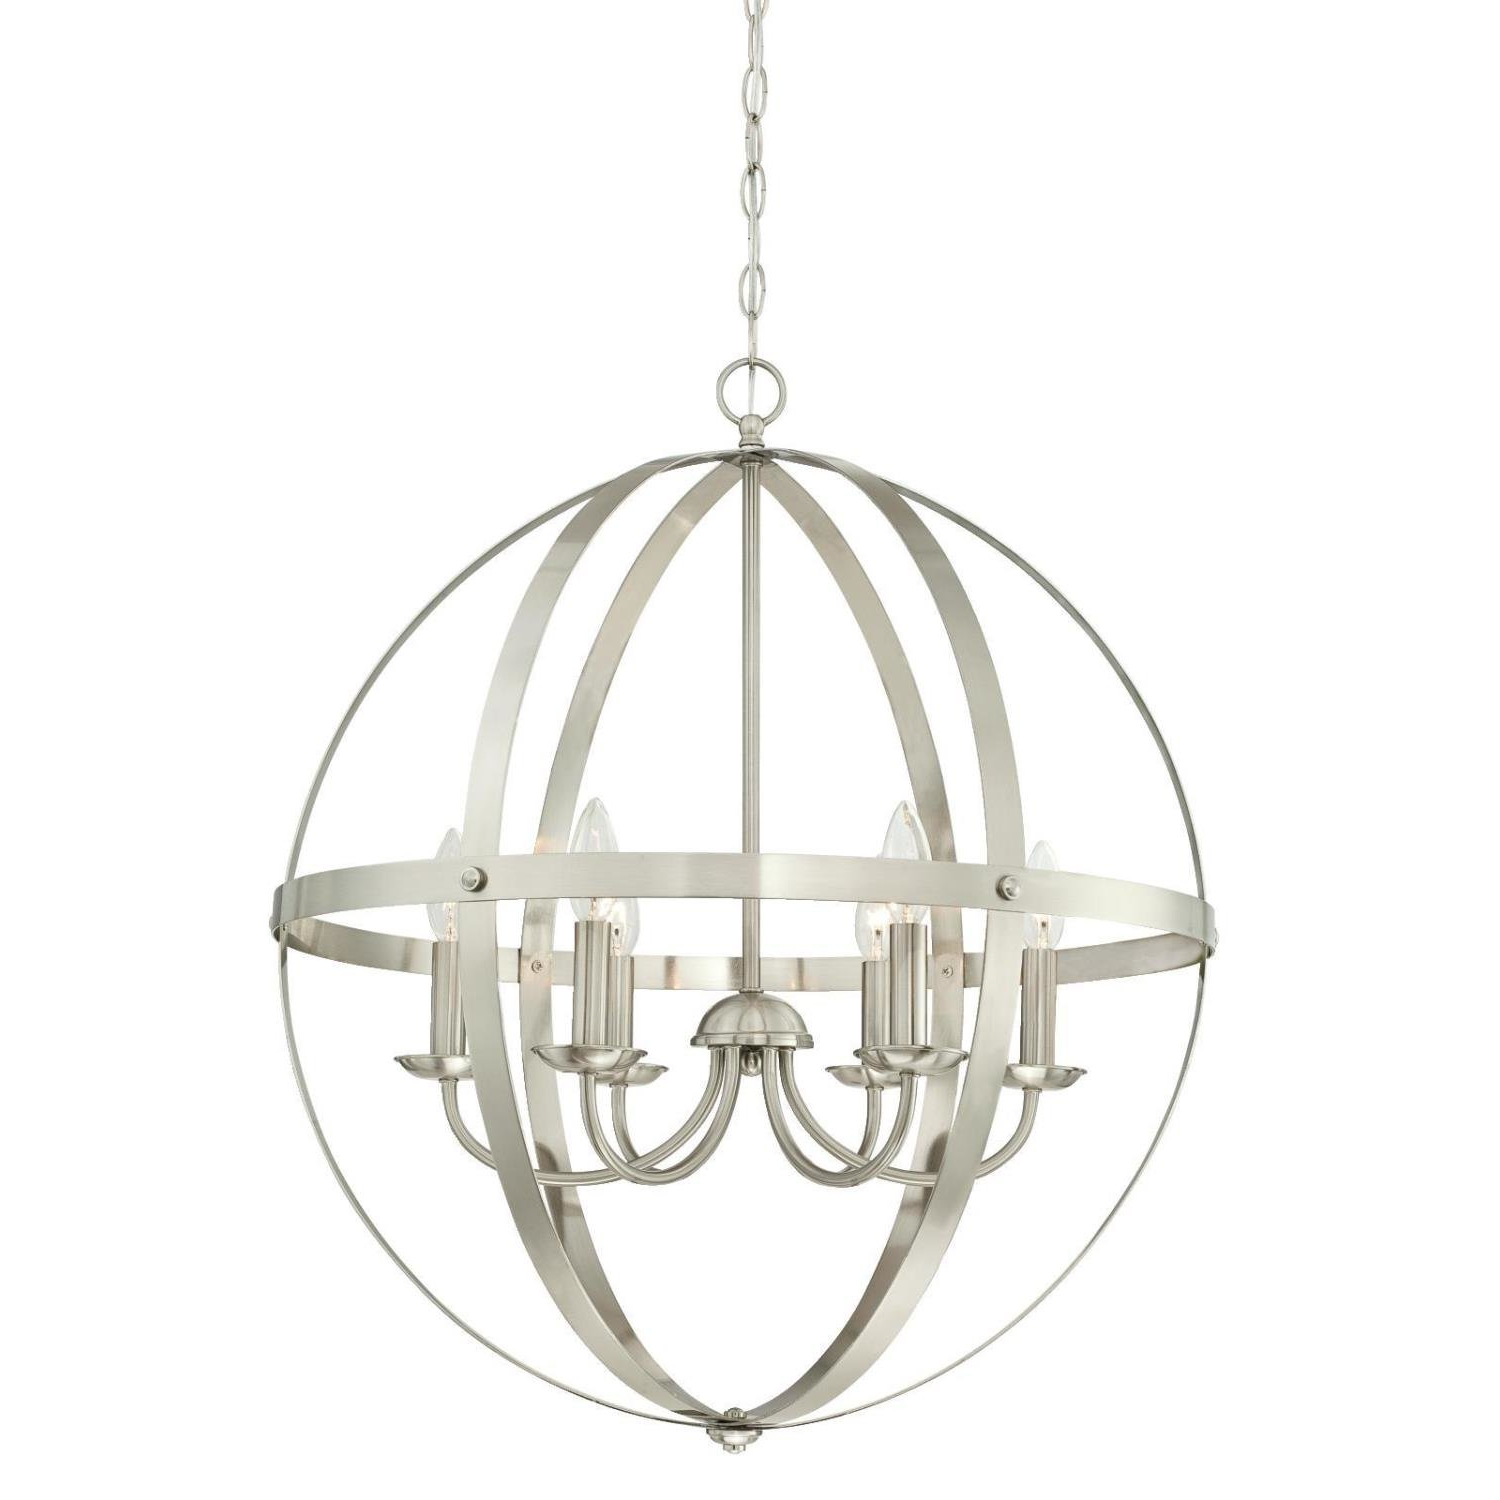 Preferred Donna 6 Light Globe Chandeliers Intended For Joon 6 Light Globe Chandelier (Gallery 12 of 20)